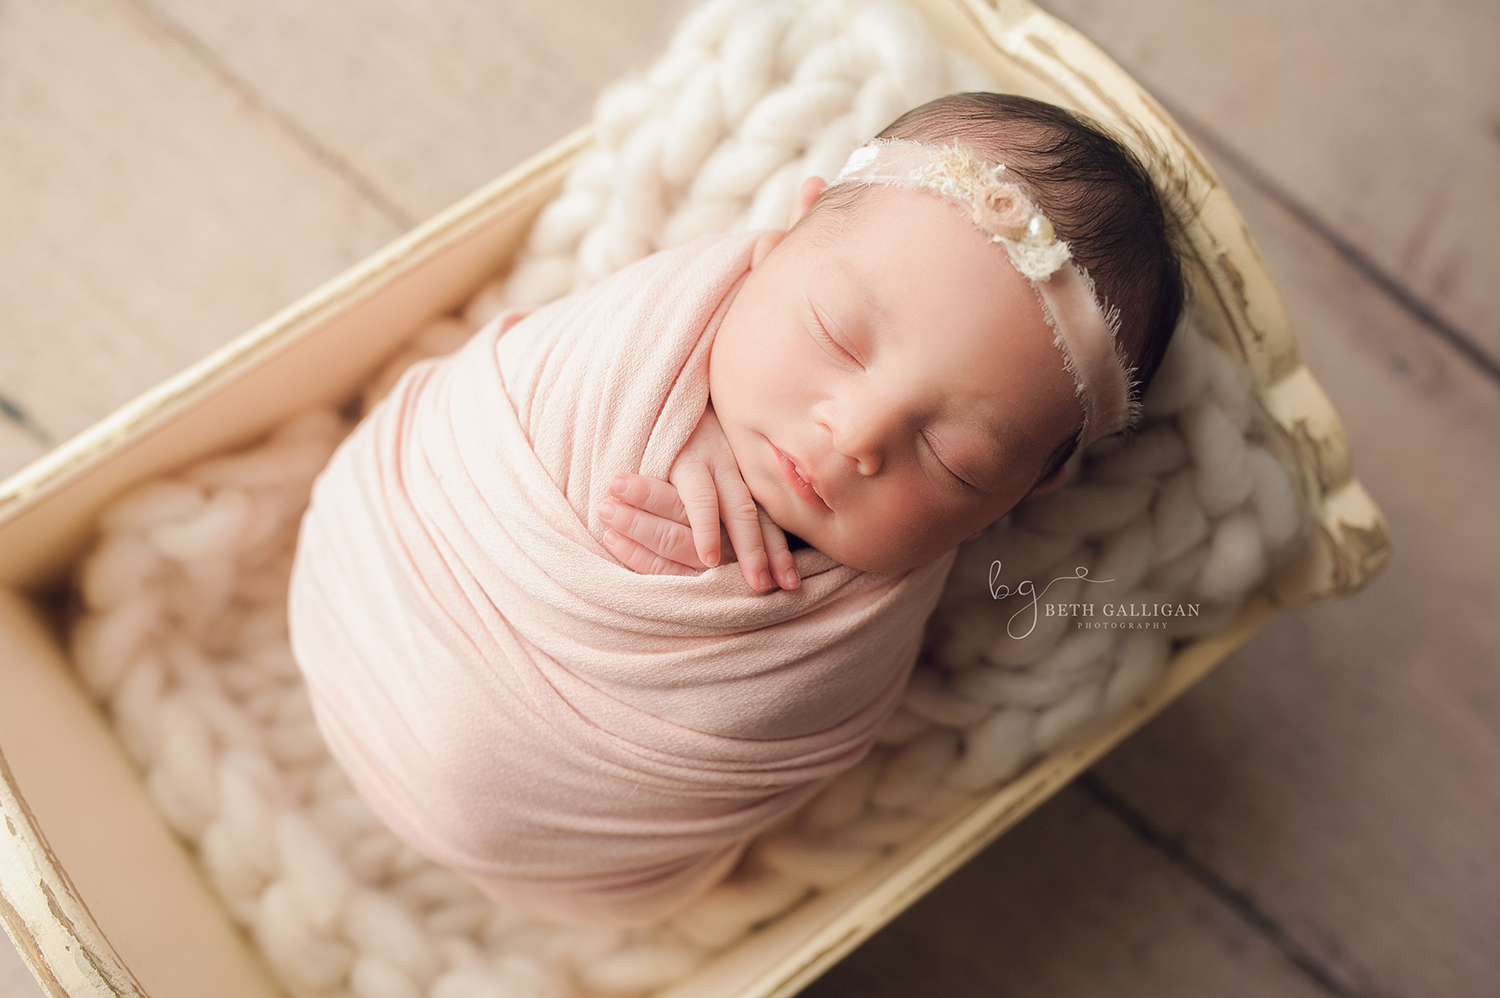 Boston Newborn Photographer Beth Galligan